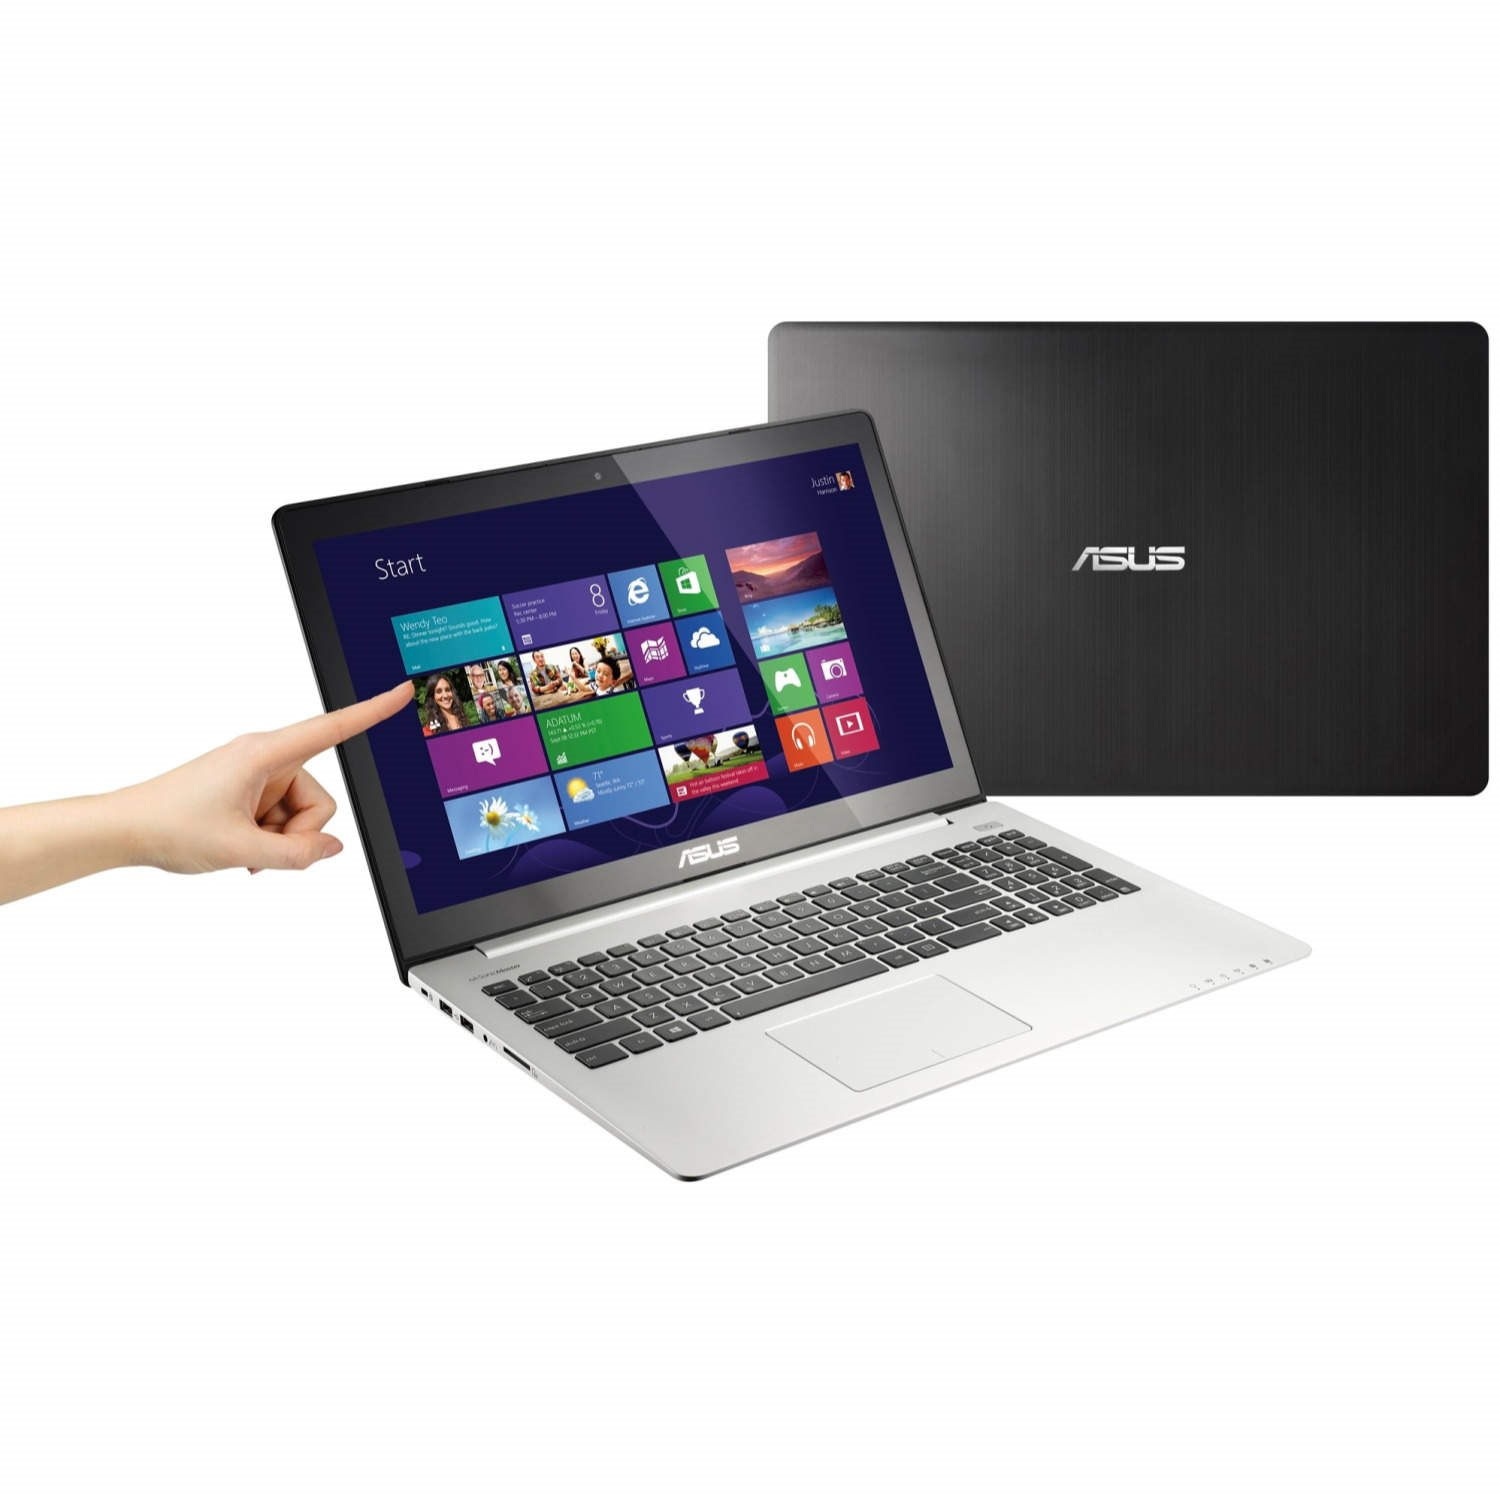 ASUS R508CA NOTEBOOK DRIVER FOR WINDOWS MAC